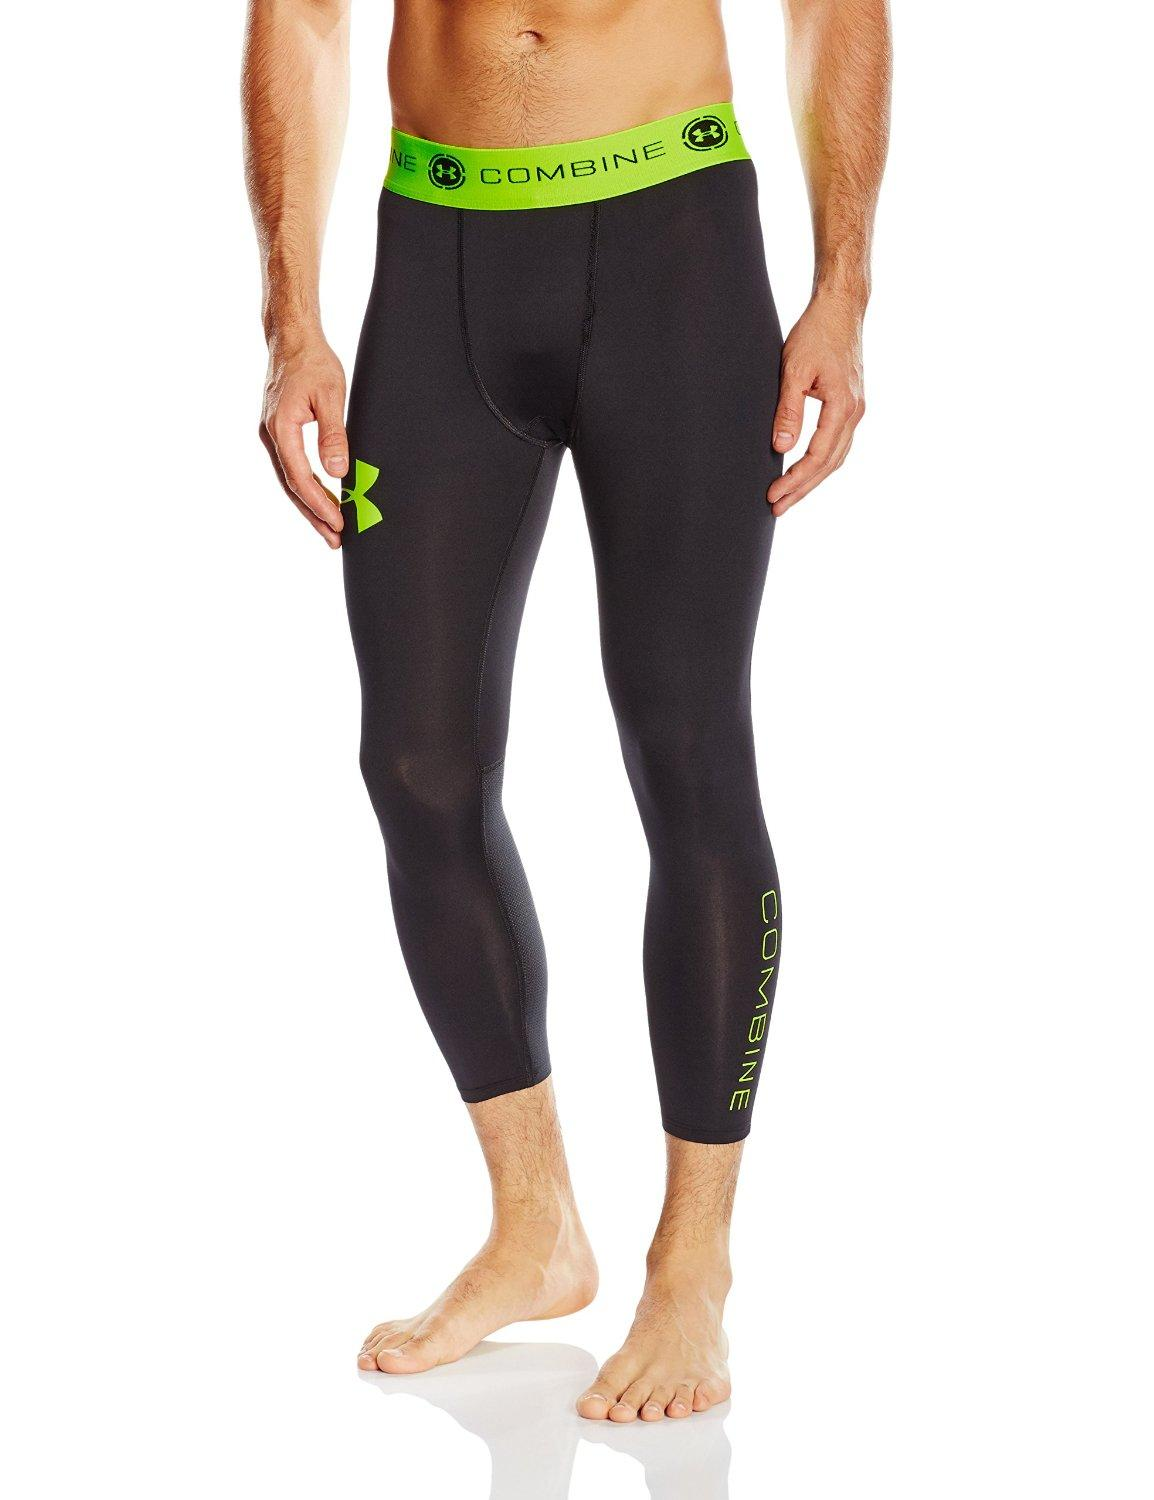 Under Armour Men's UA Combine® Training Ascent ¾ Compression Leggings